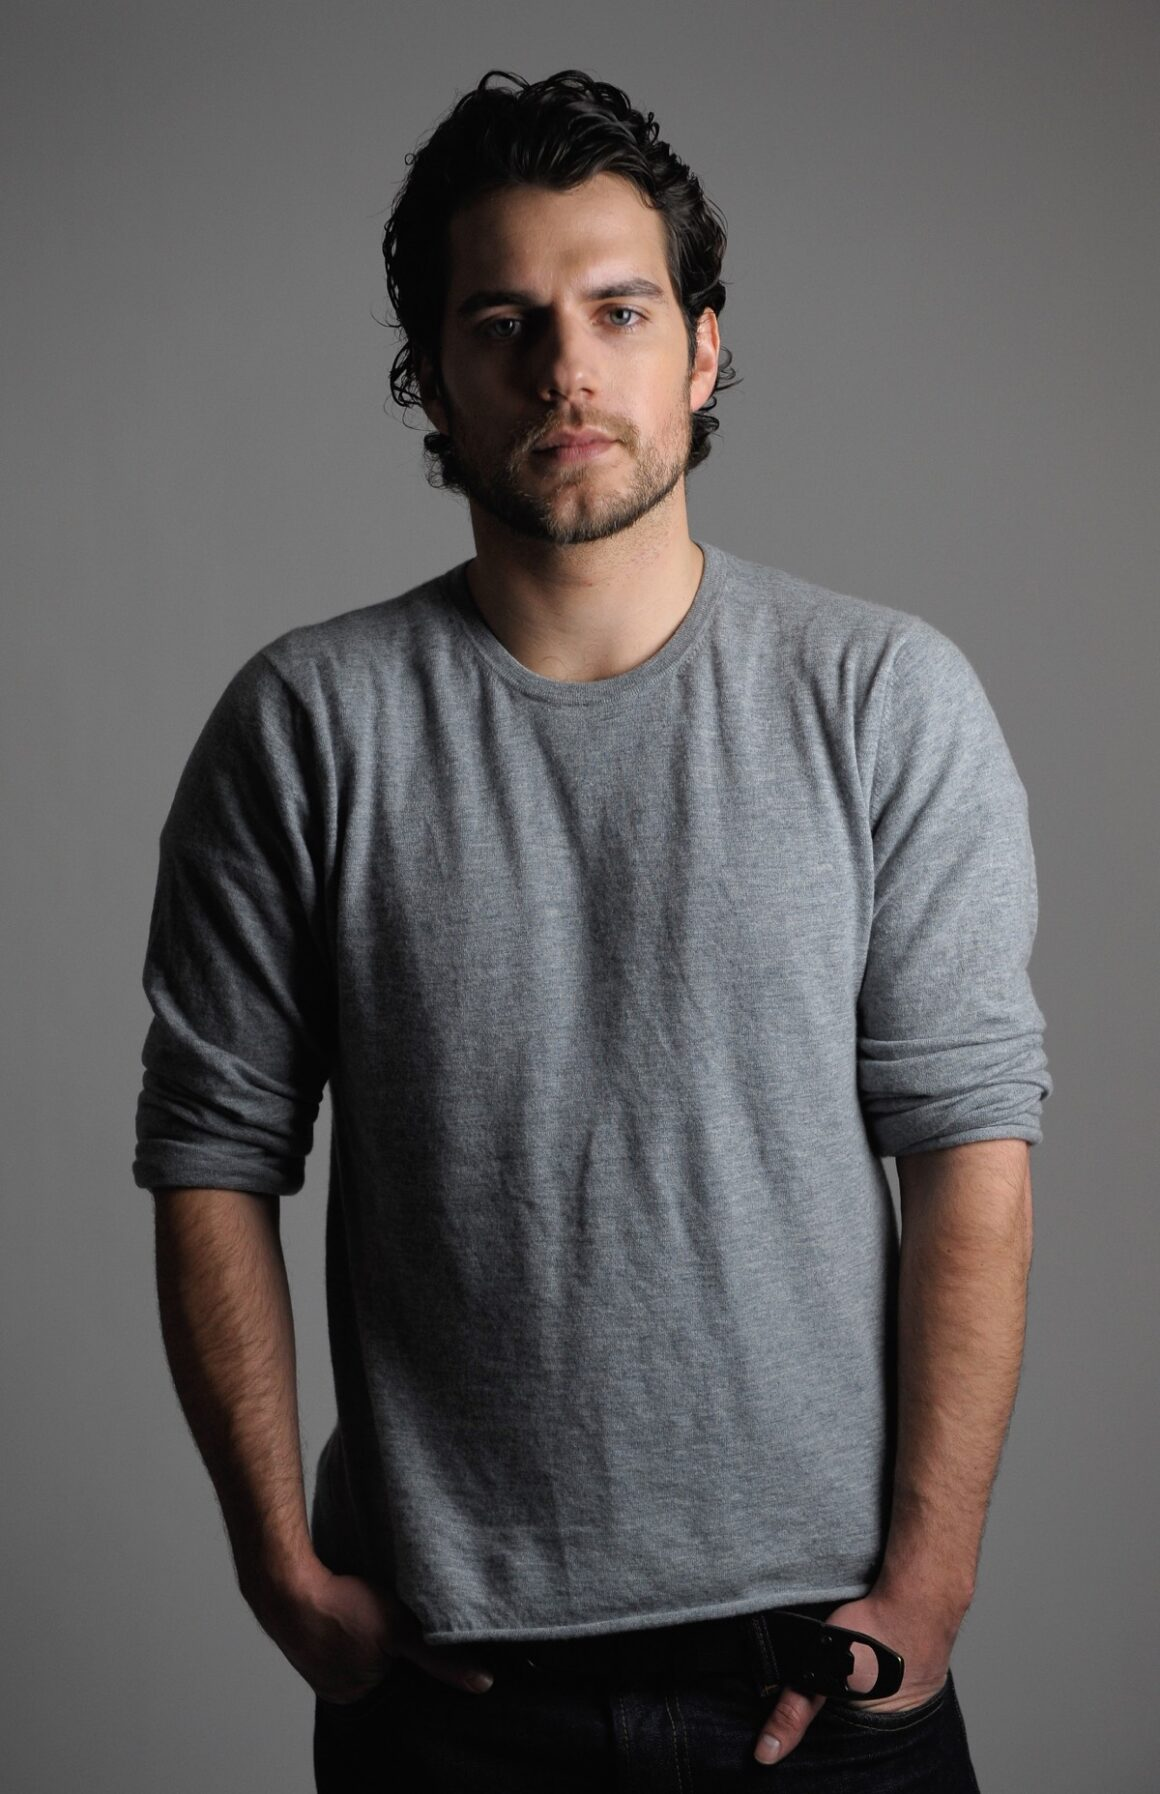 Henry Cavill TFF 2009 Portrait Studio At The DIRECTV Tribeca Press Center- Day 1